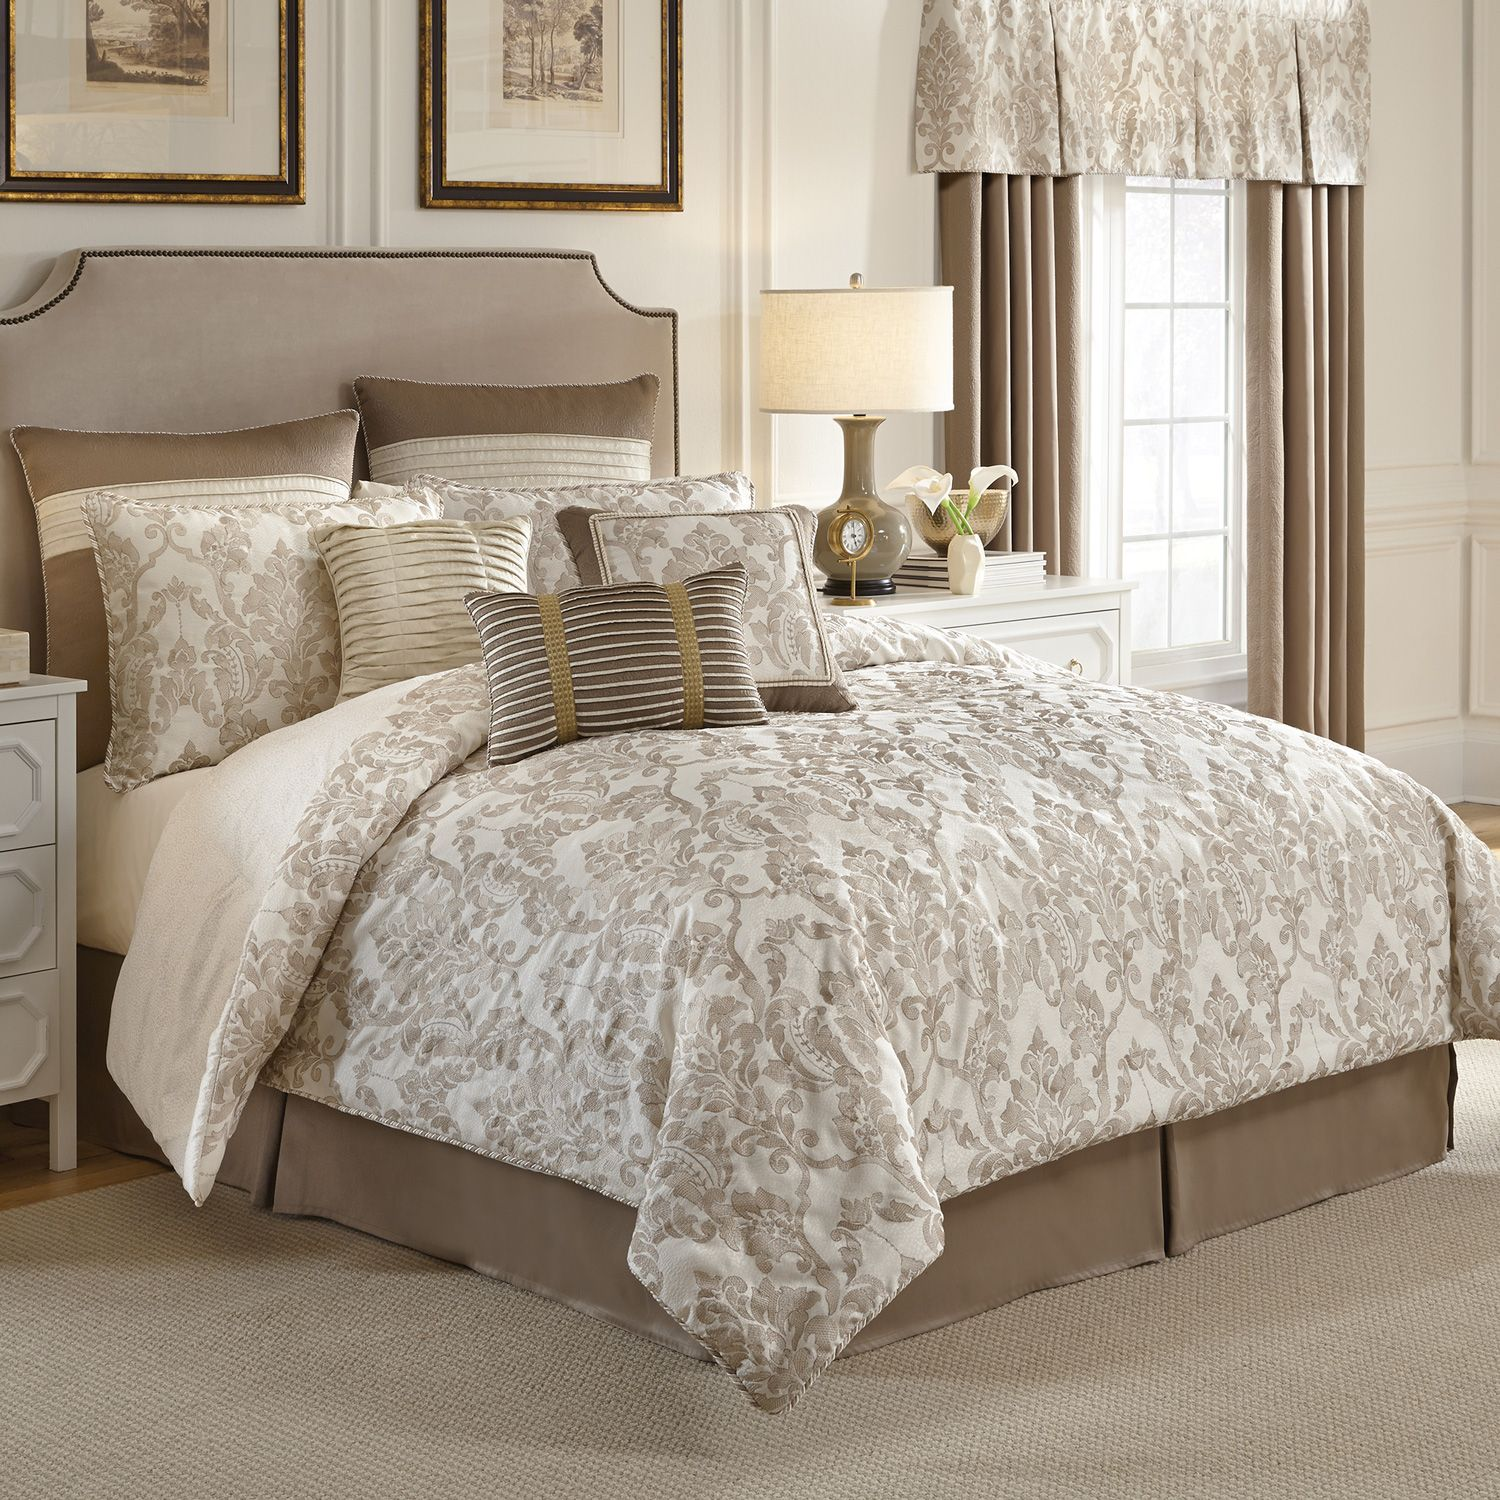 Amazing comforters sets for bedroom design with queen comforter sets